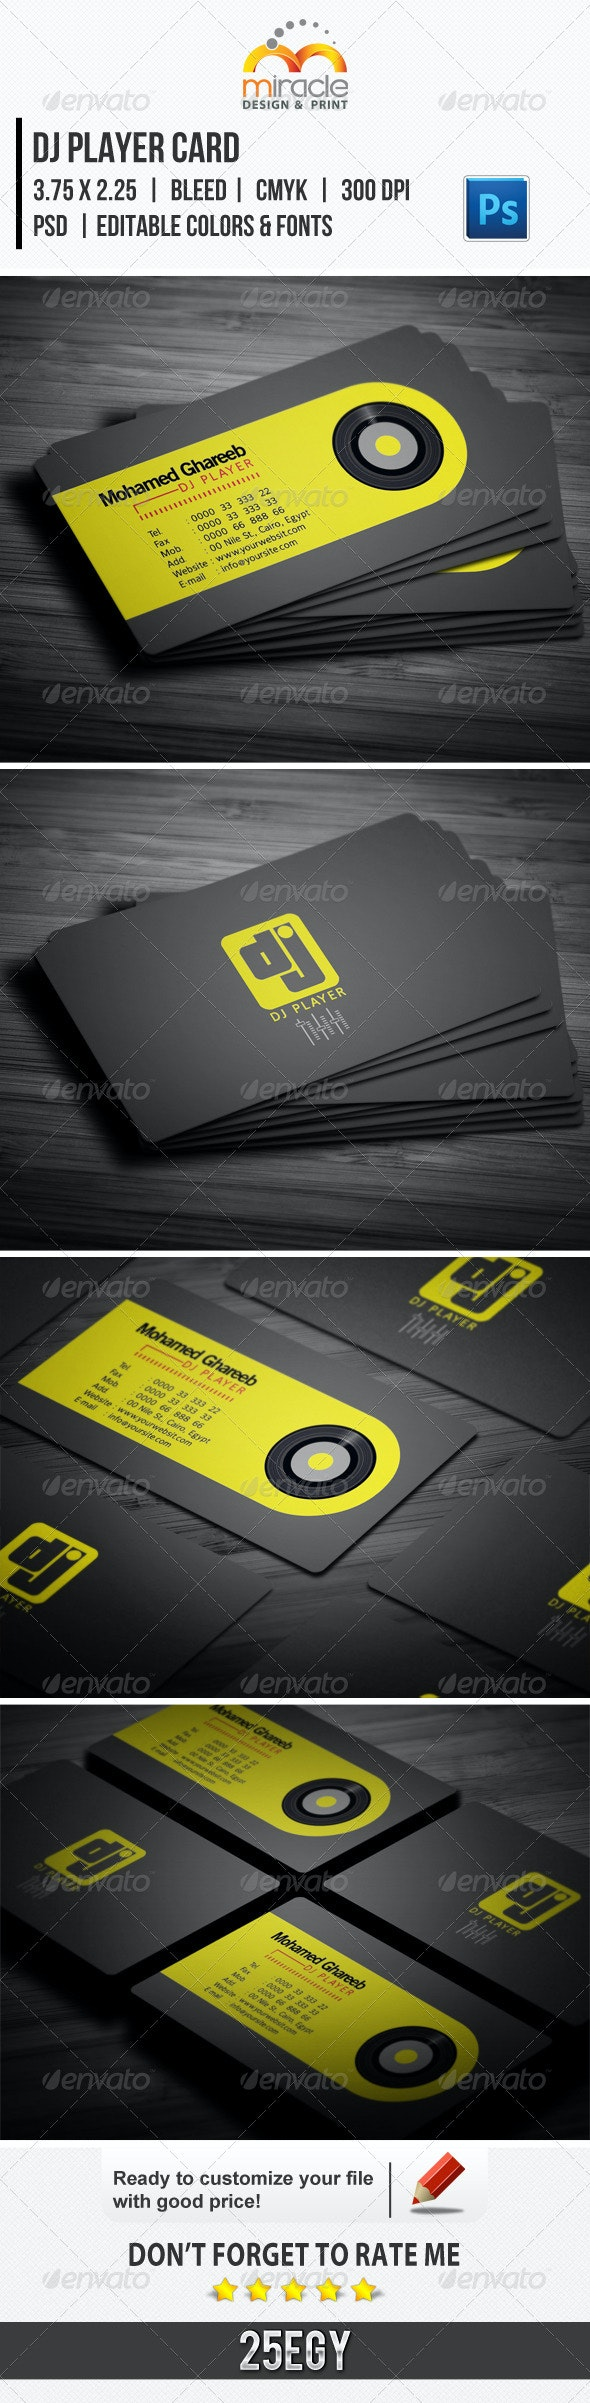 DJ Player Card - Industry Specific Business Cards